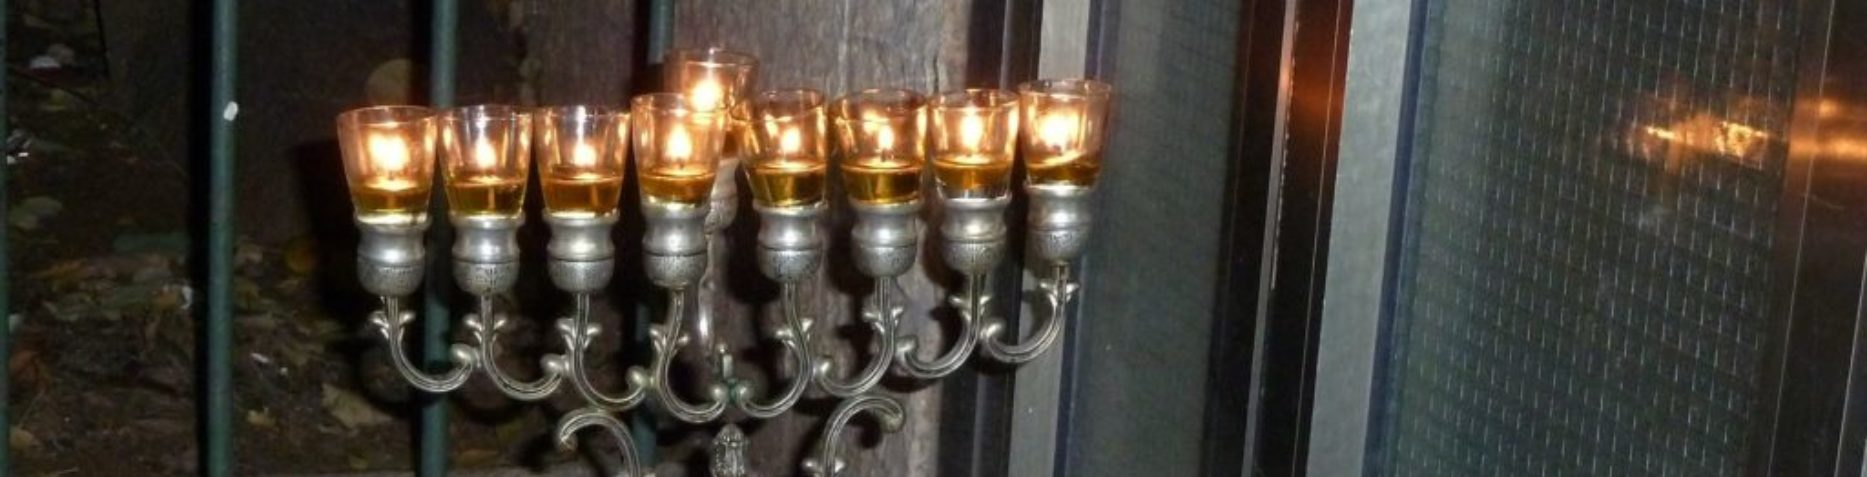 Old_Jerusalem_candlestick_with_oil_lamps - Copy